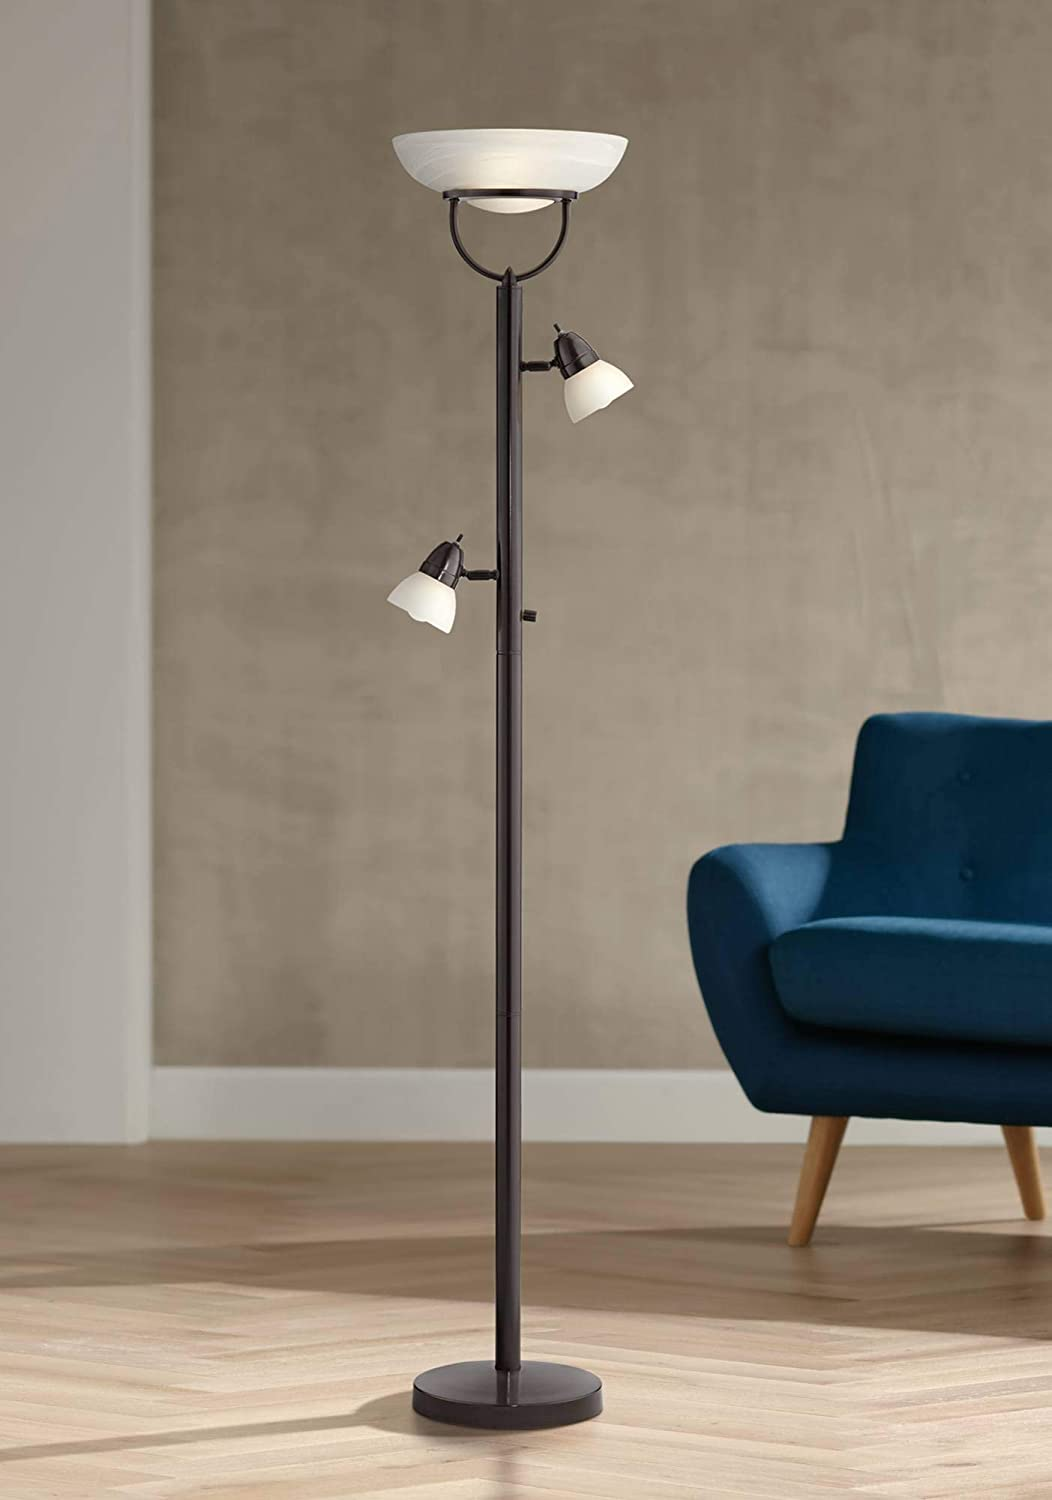 Modern Torchiere Floor Lamp 3-in-1 Design Tiger Bronze White Glass Shades for Living Room Reading Bedroom Office